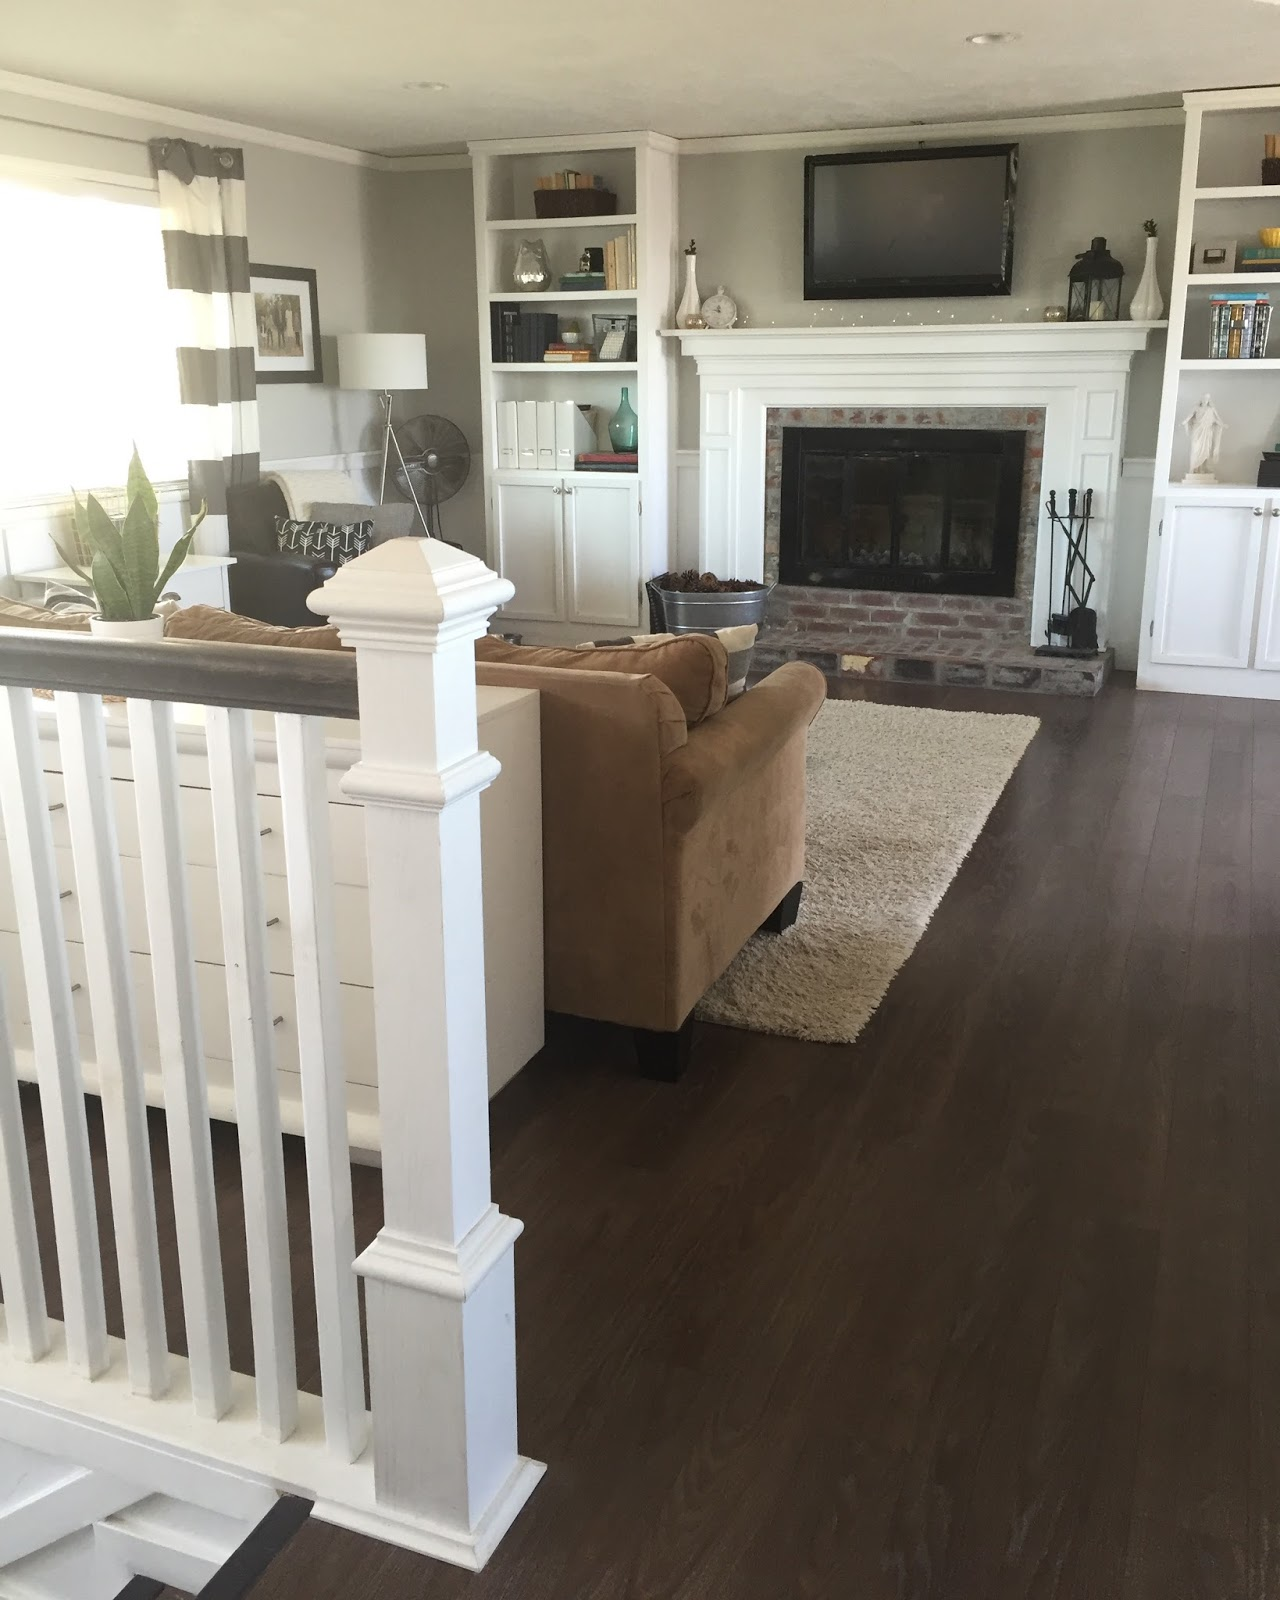 Very Keep Home Simple: Our Split Level Fixer Upper IG01